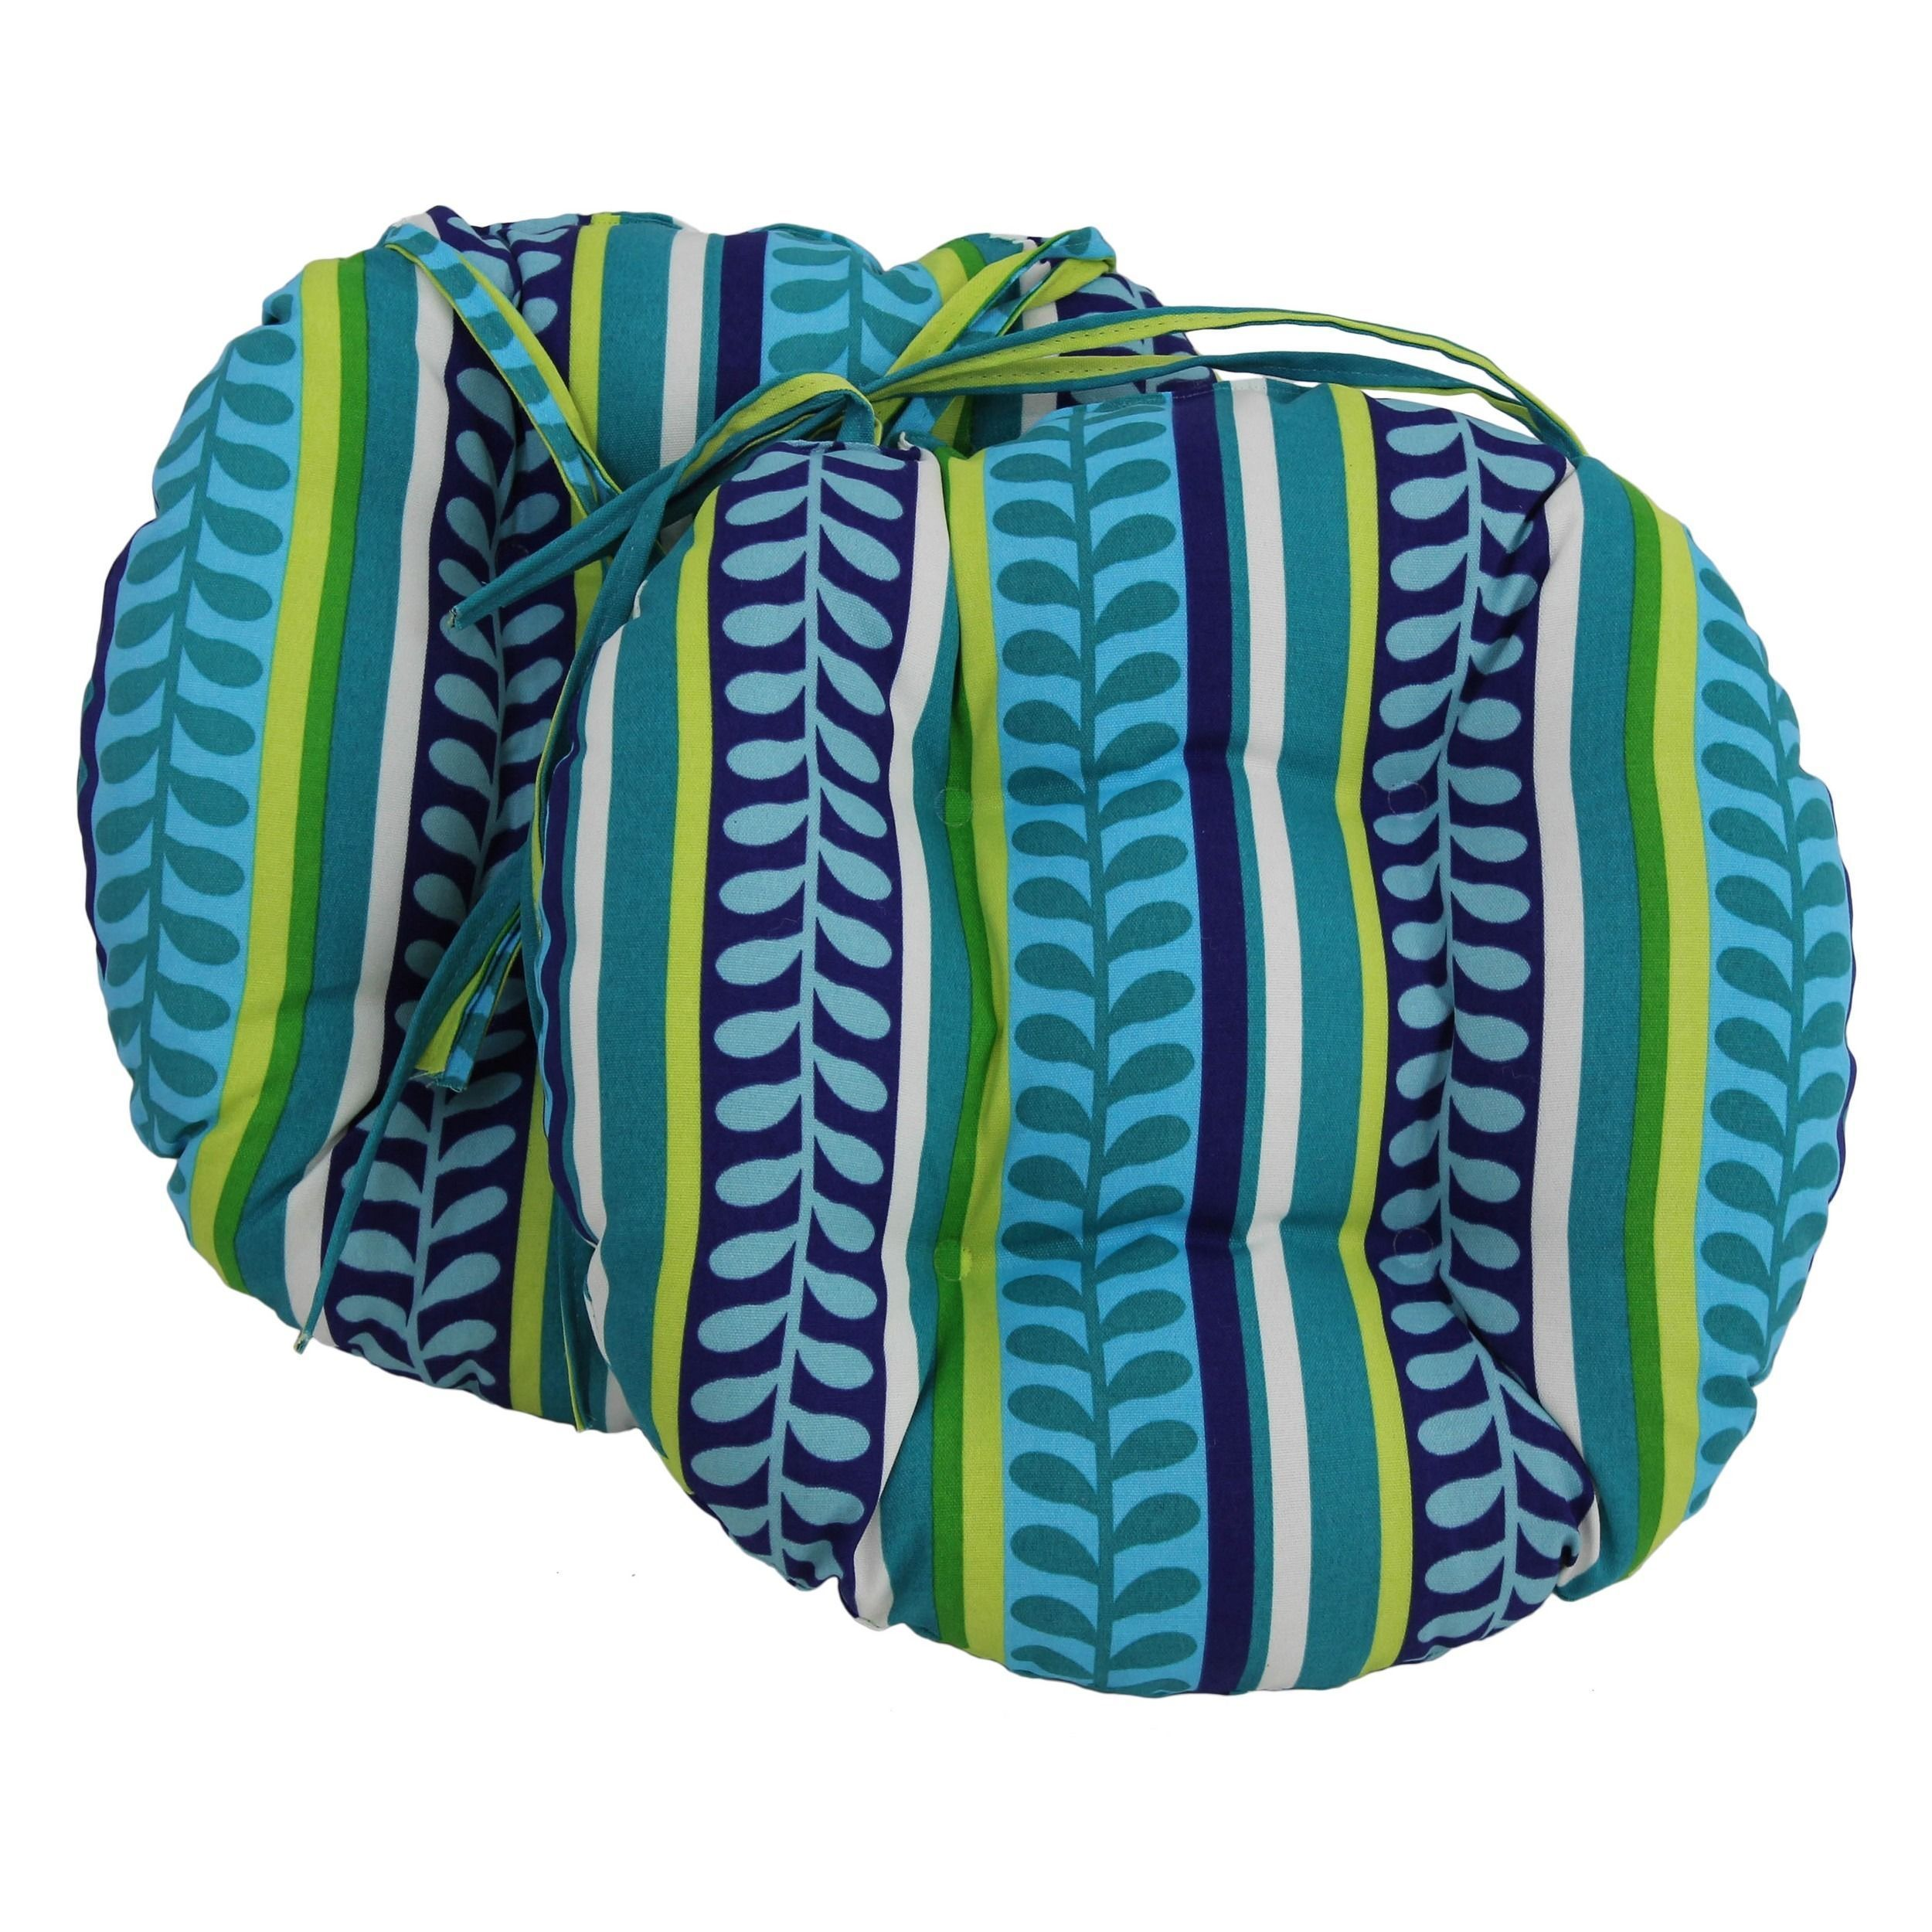 Blazing Needles 16x16 Inch Round Patterned Outdoor Chair Cushions (Set Of  2)